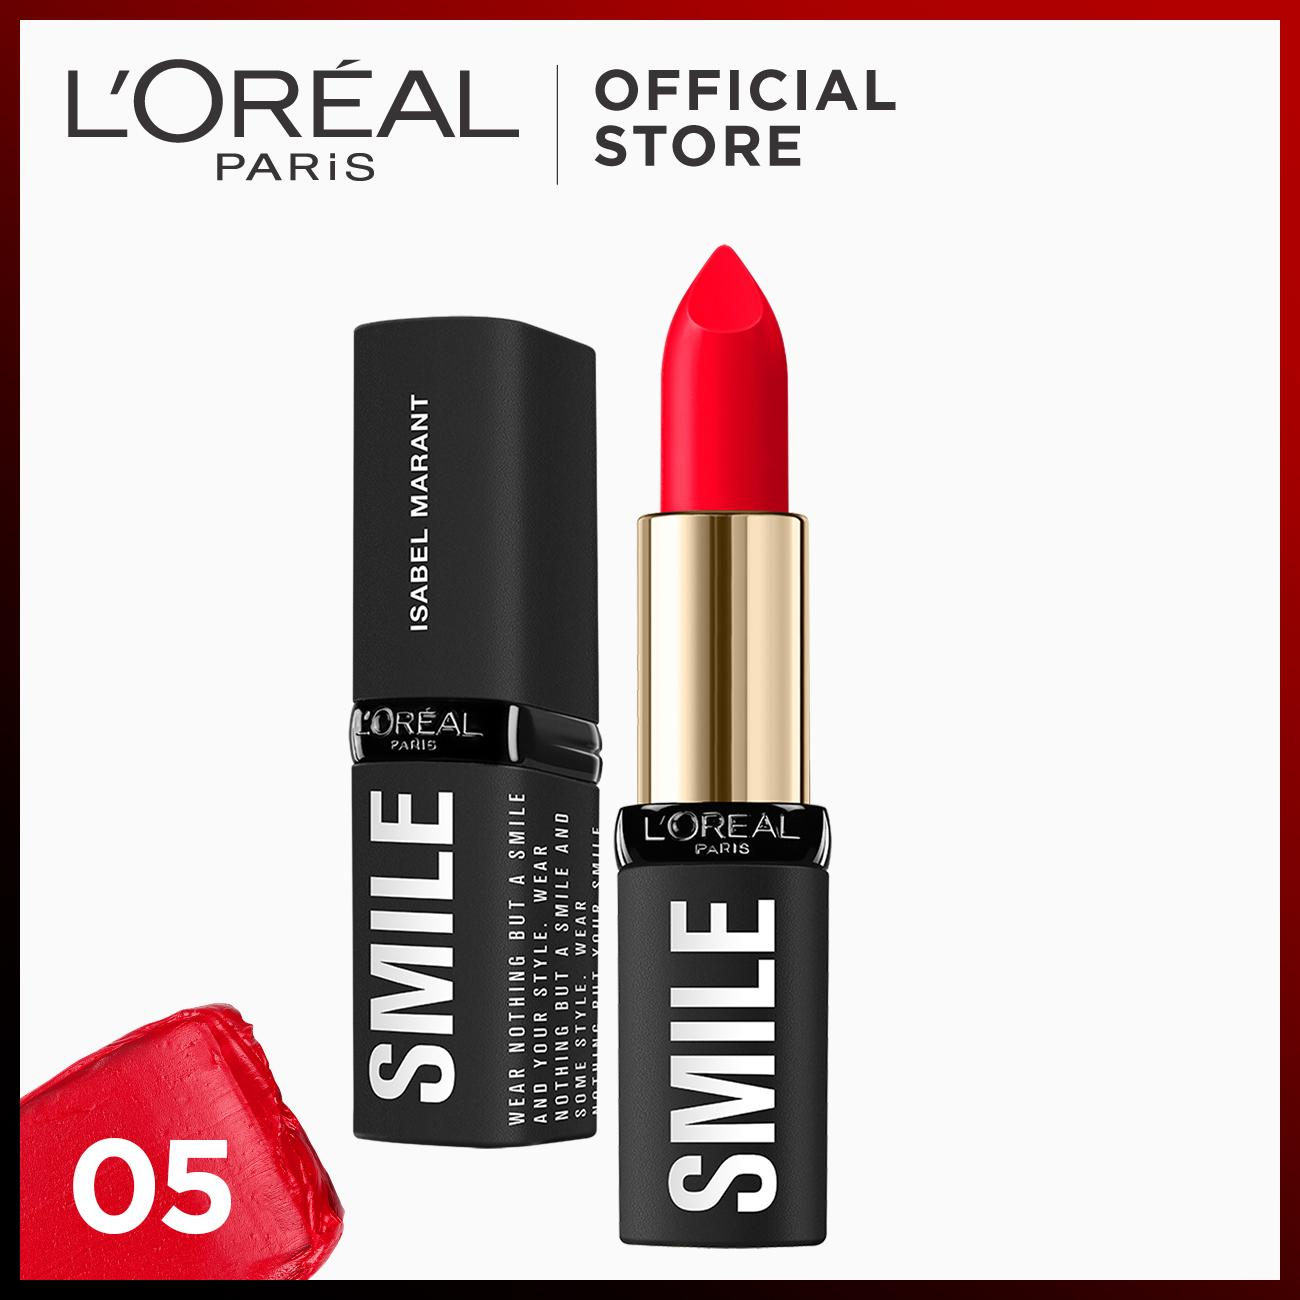 Loreal Paris Lipstick Philippines Lip Color For City Chic Liner Marsala Designer Makeup By Isabel Marant Smile Collection